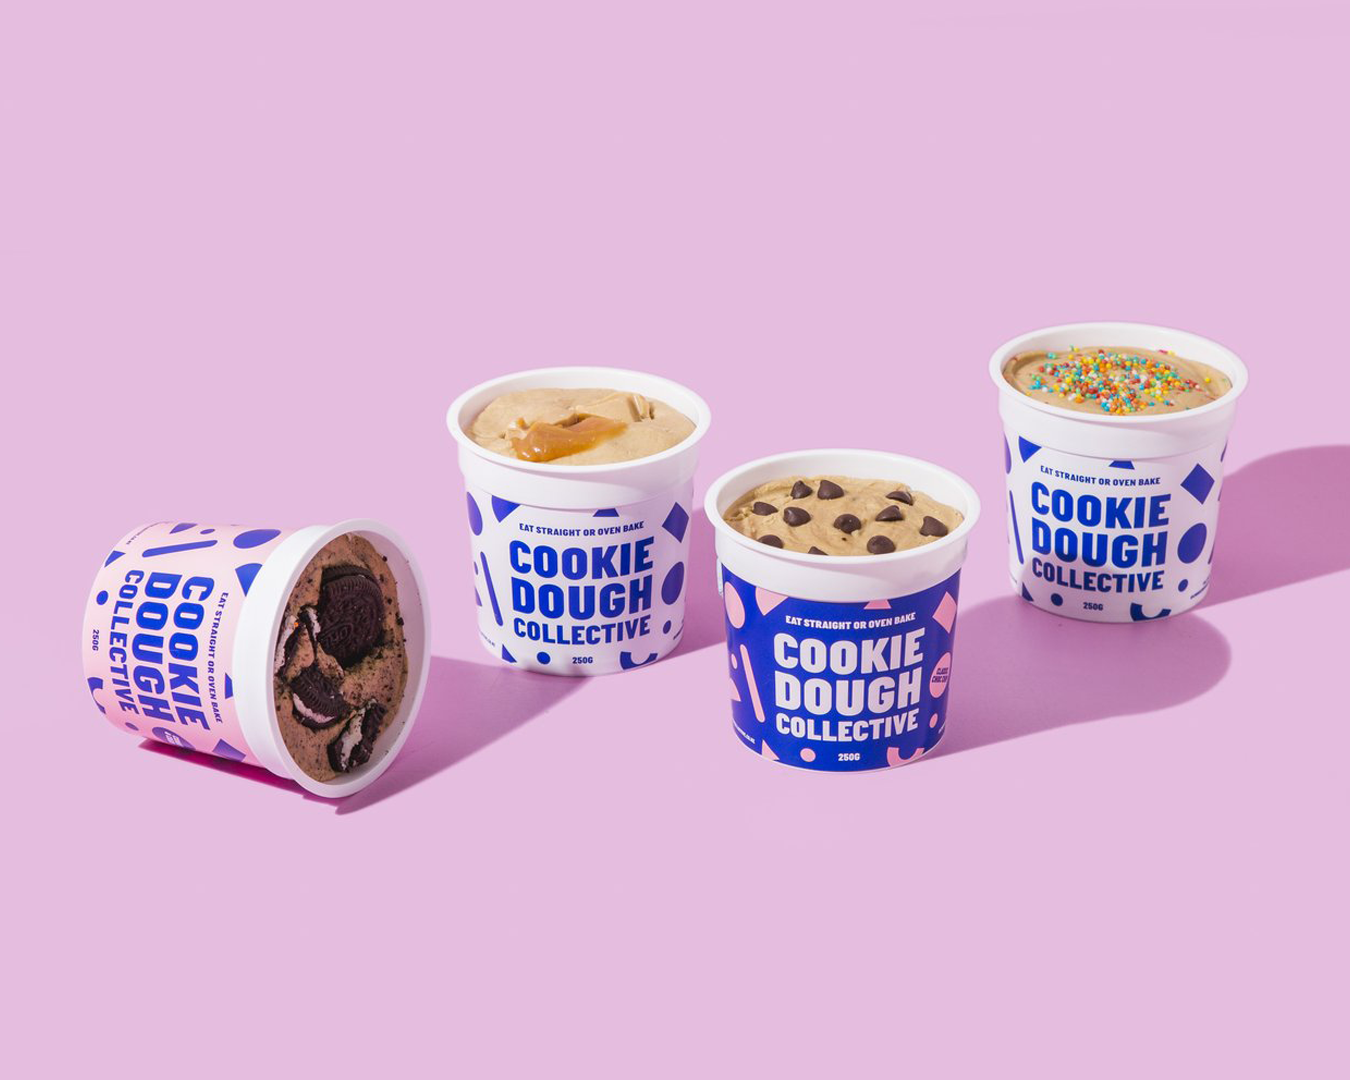 Four plastic tubs of cookie dough in different flavours on a pink background